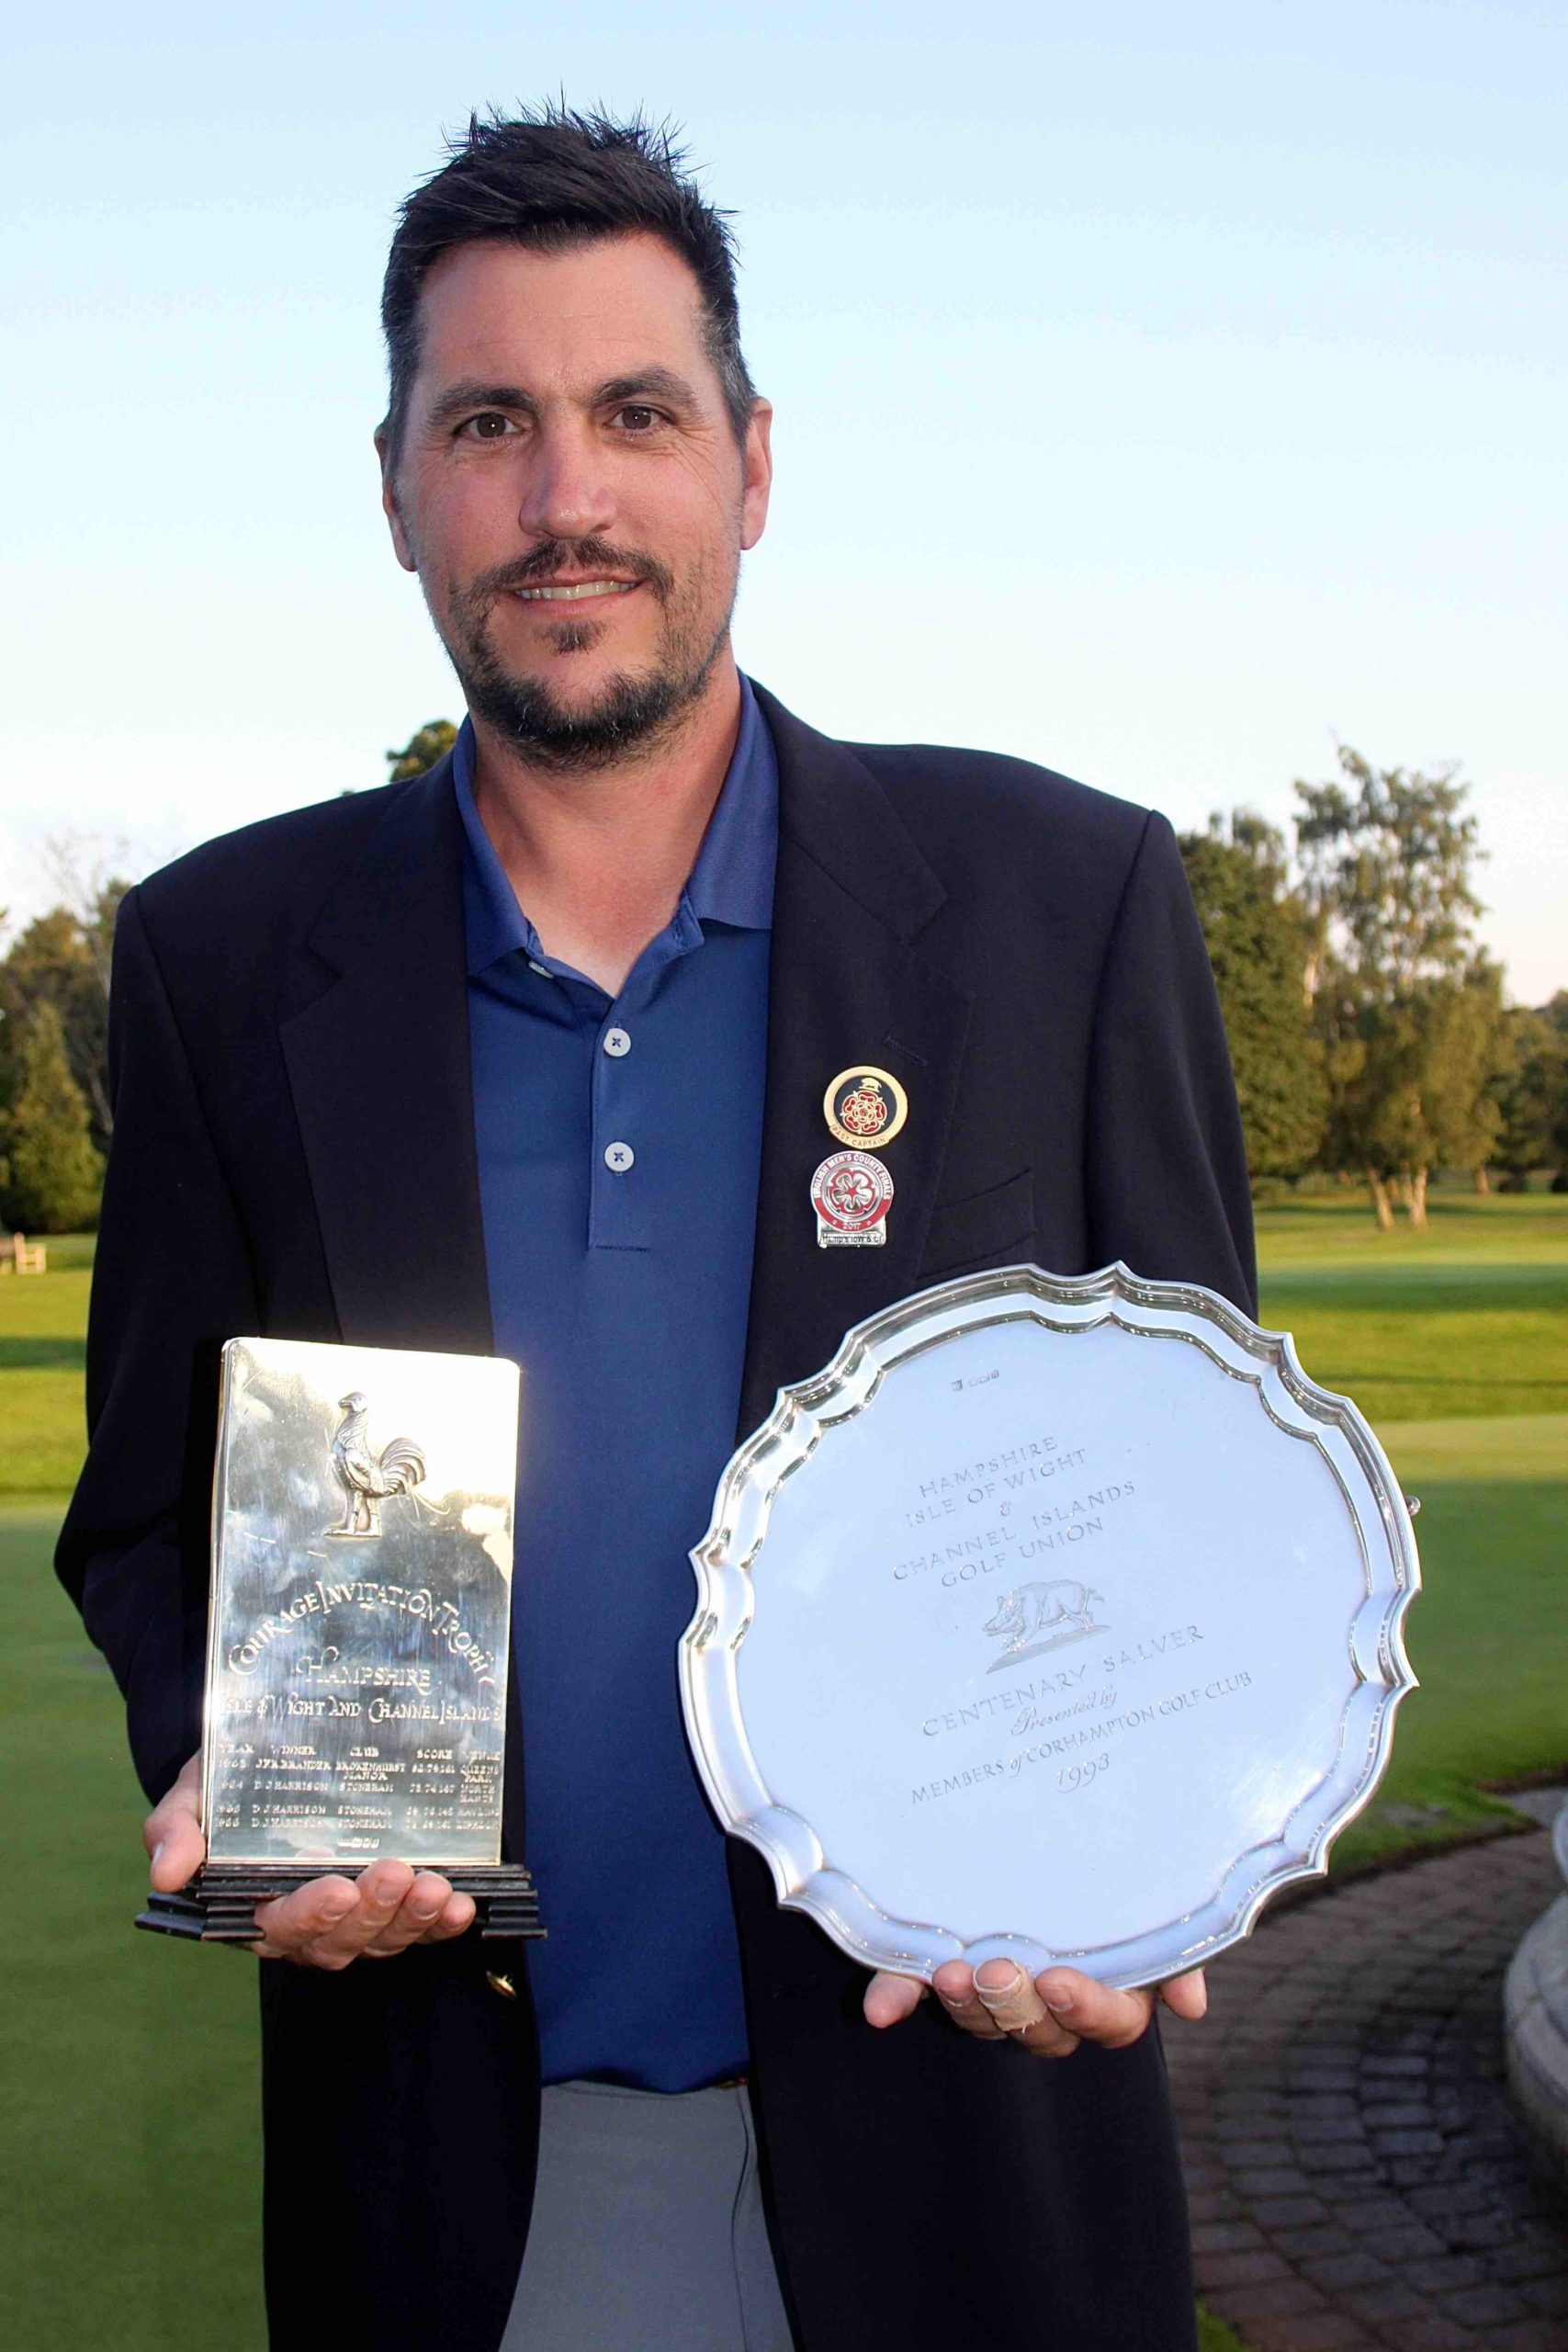 Courage Trophy winner Martin Young